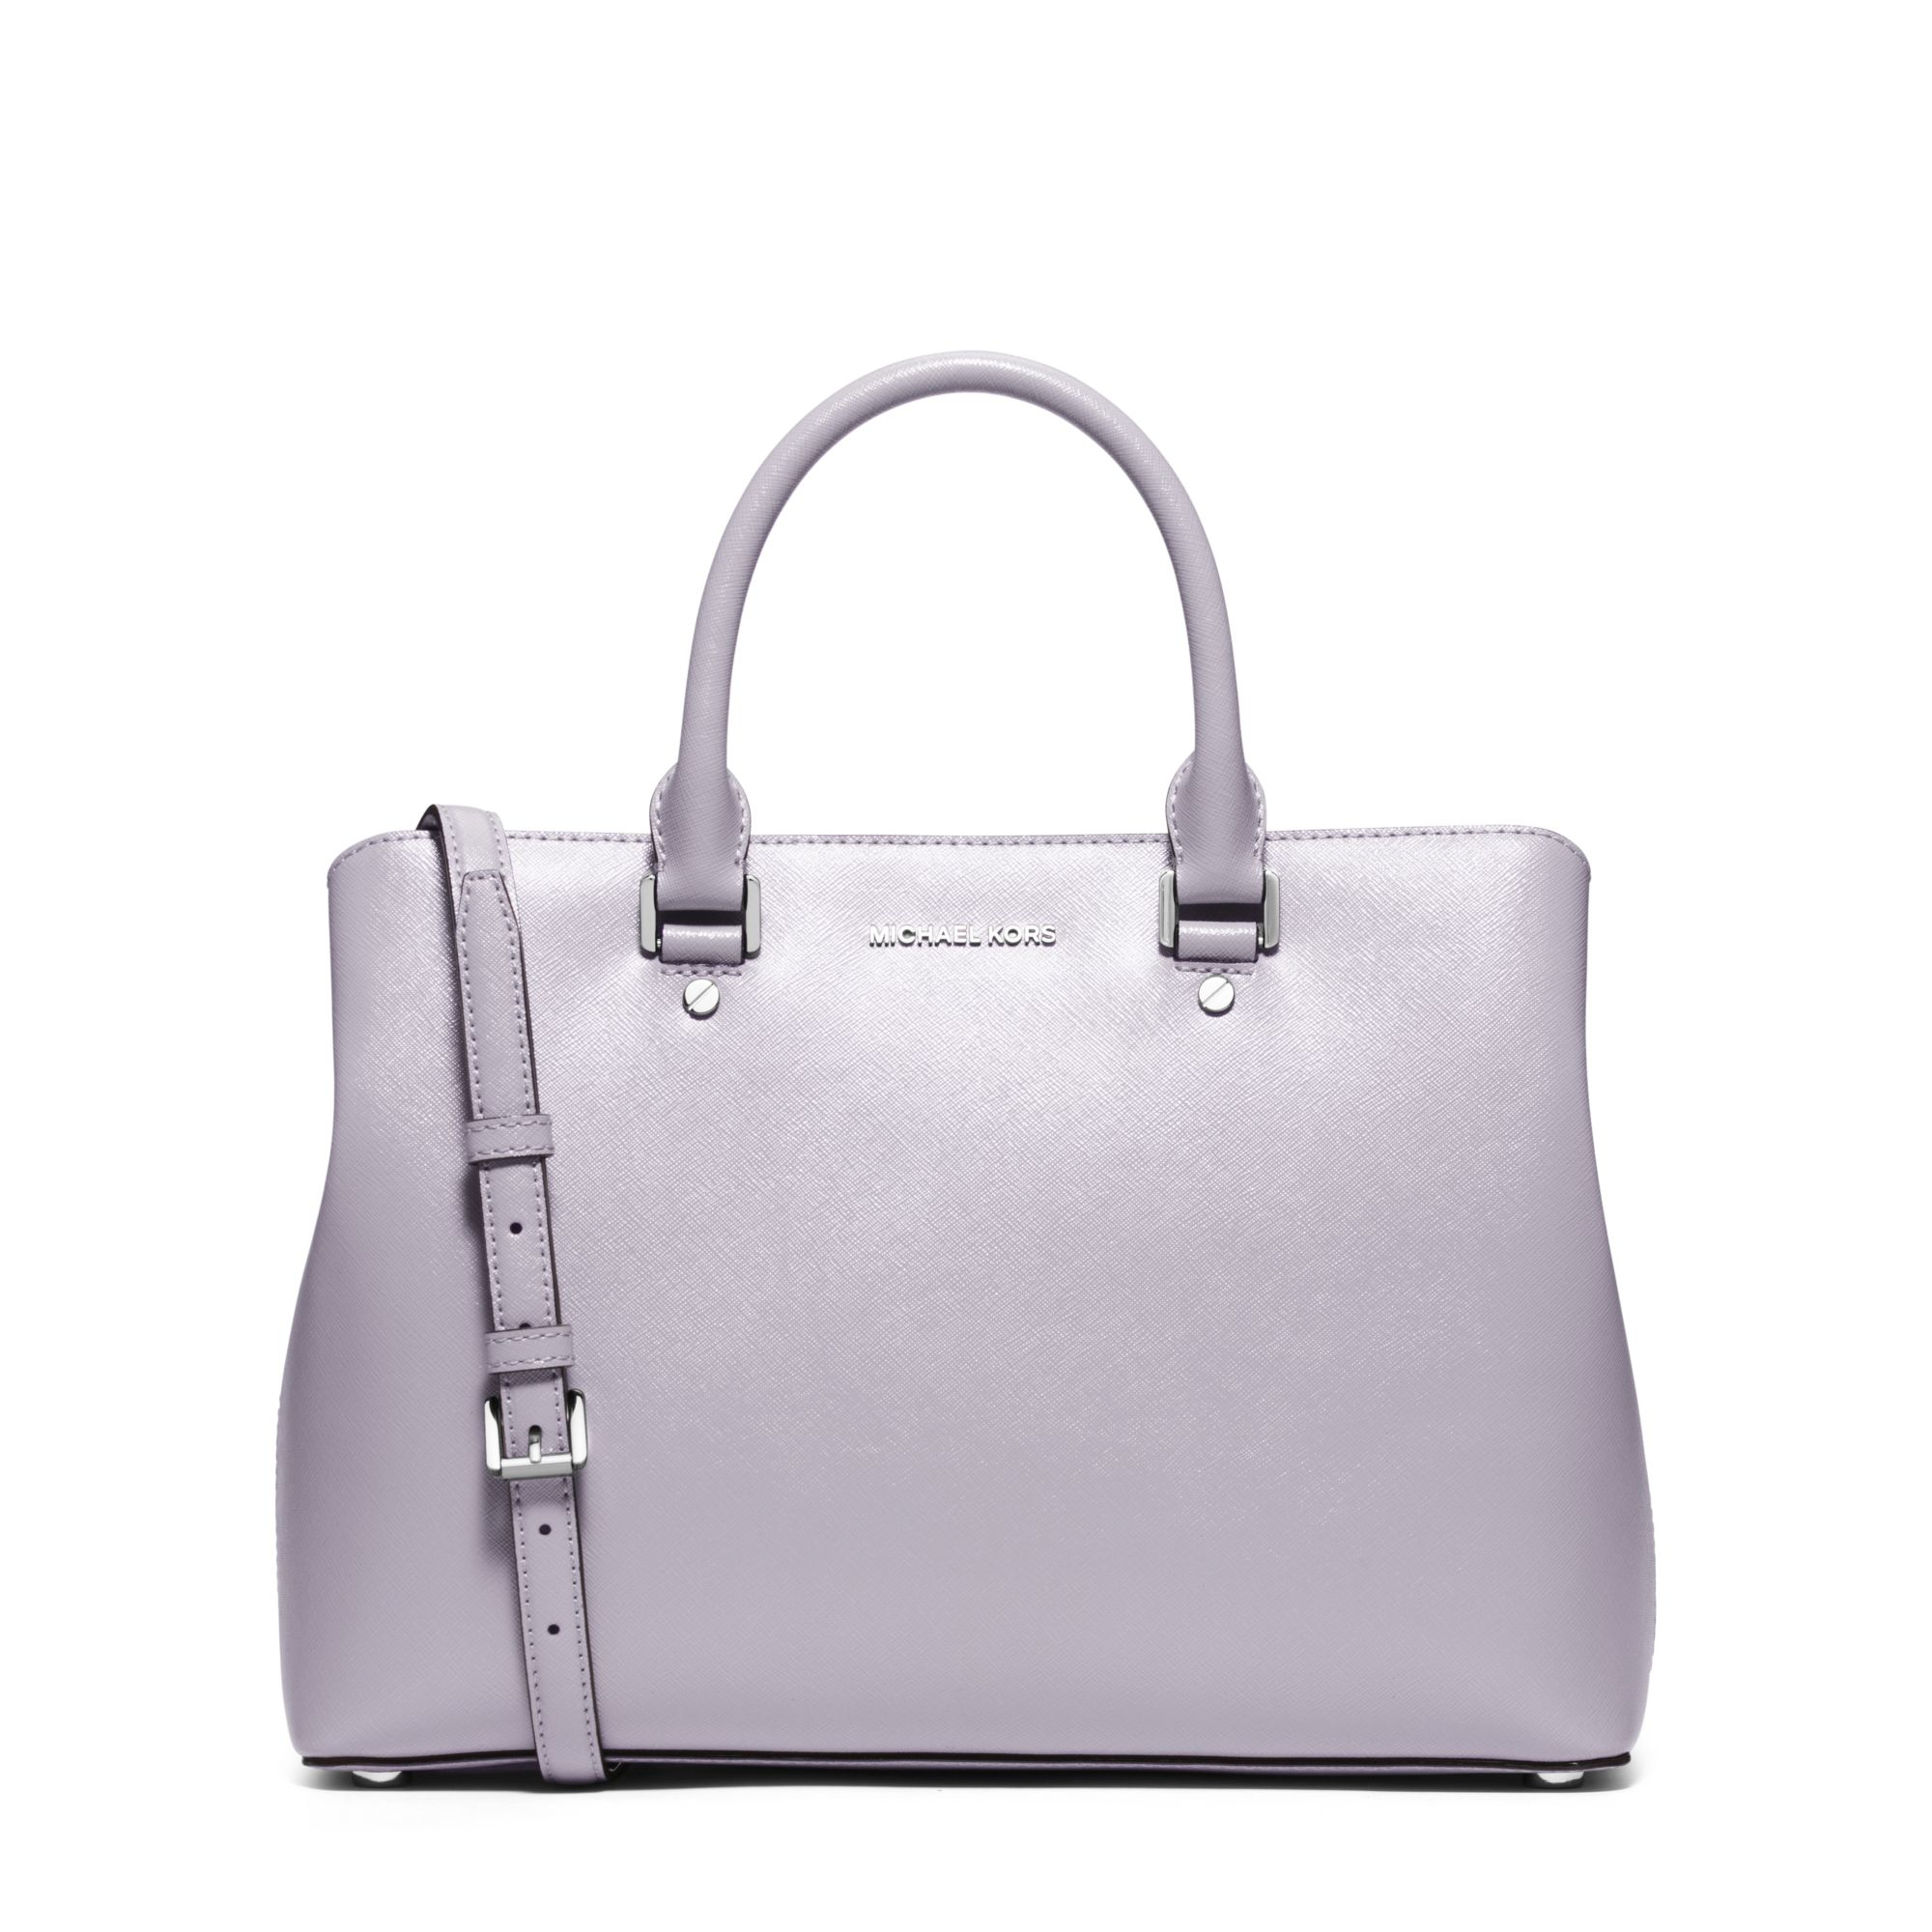 6d4e97d4d2c7 ... new zealand backpack c4412 eeb70 where to buy lyst michael kors  savannah large patent leather satchel